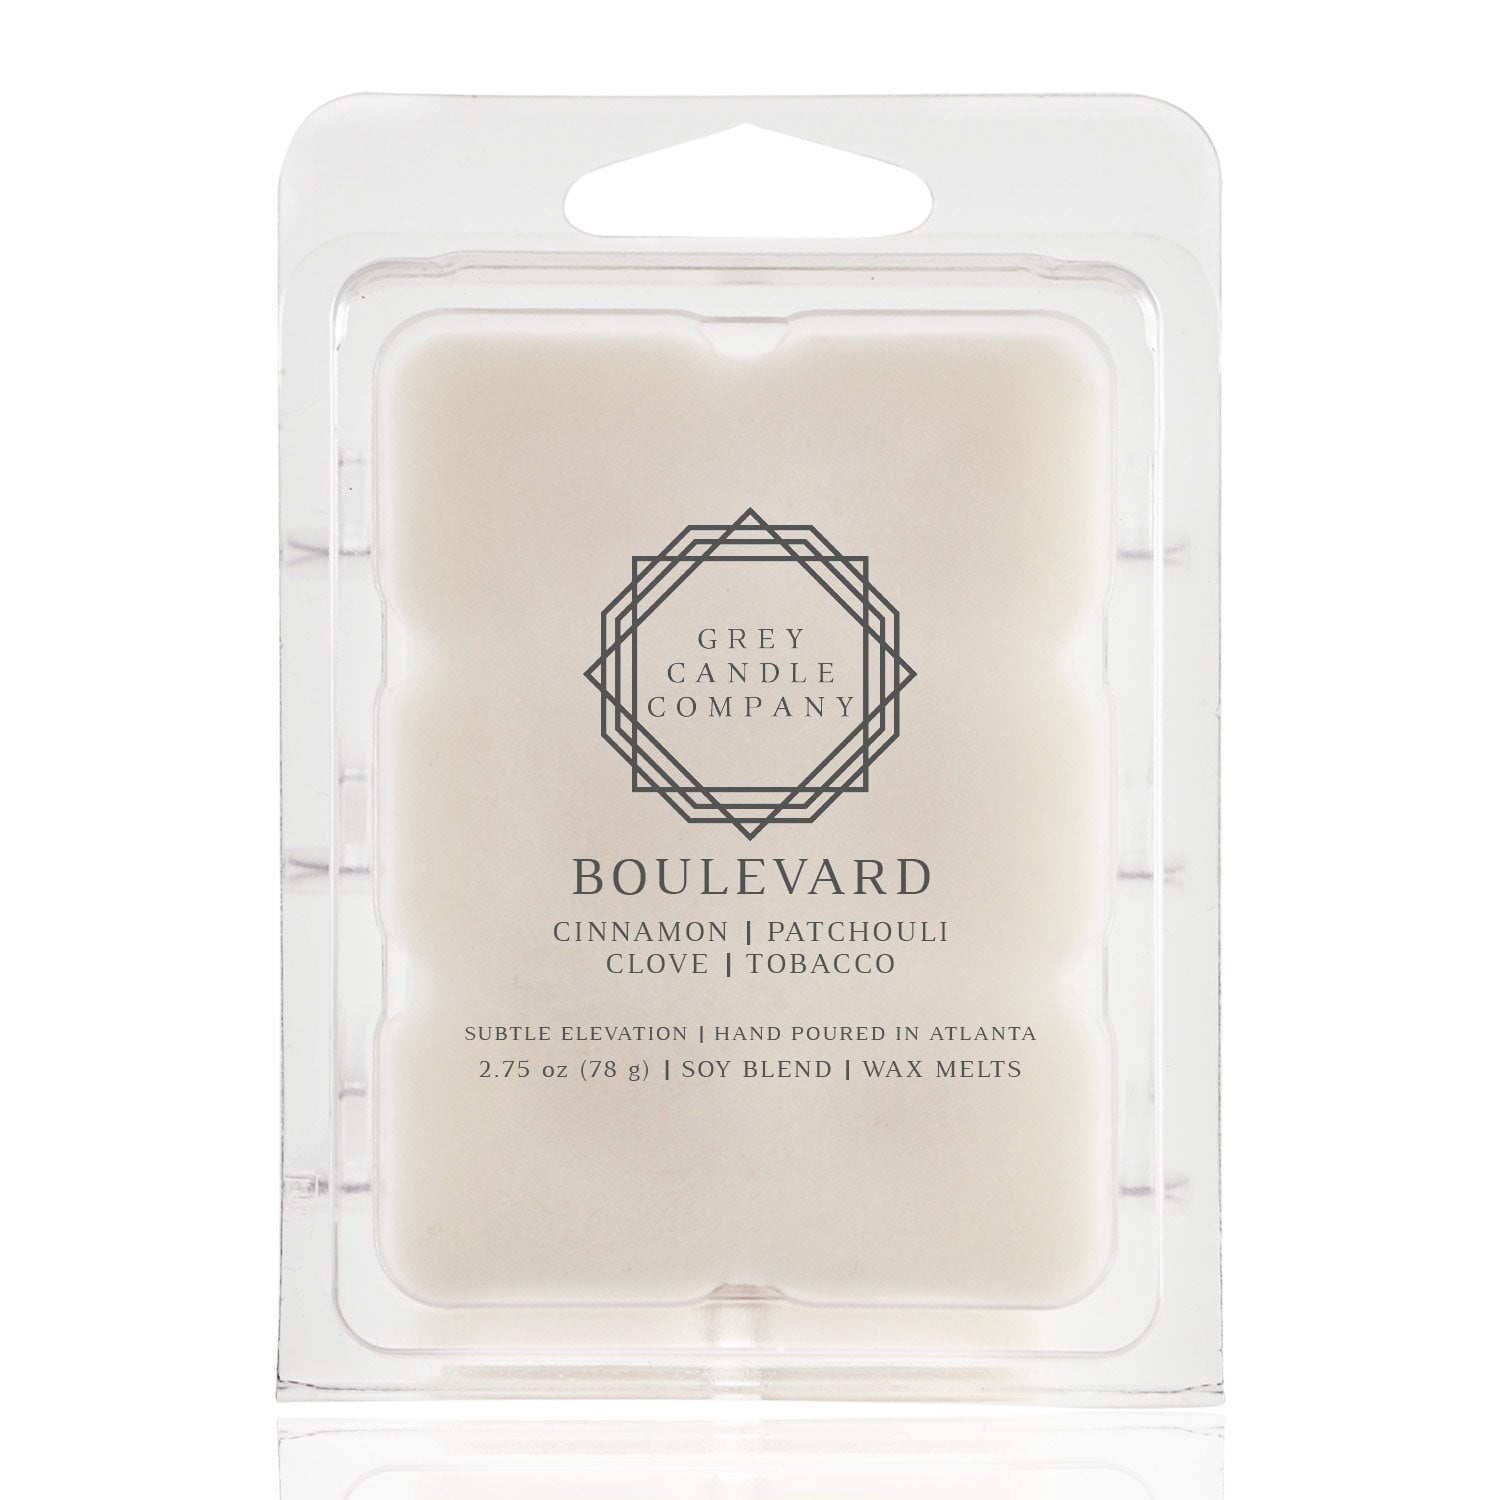 BOULEVARD - Wax Melts WAX MELTS Grey Candle Company